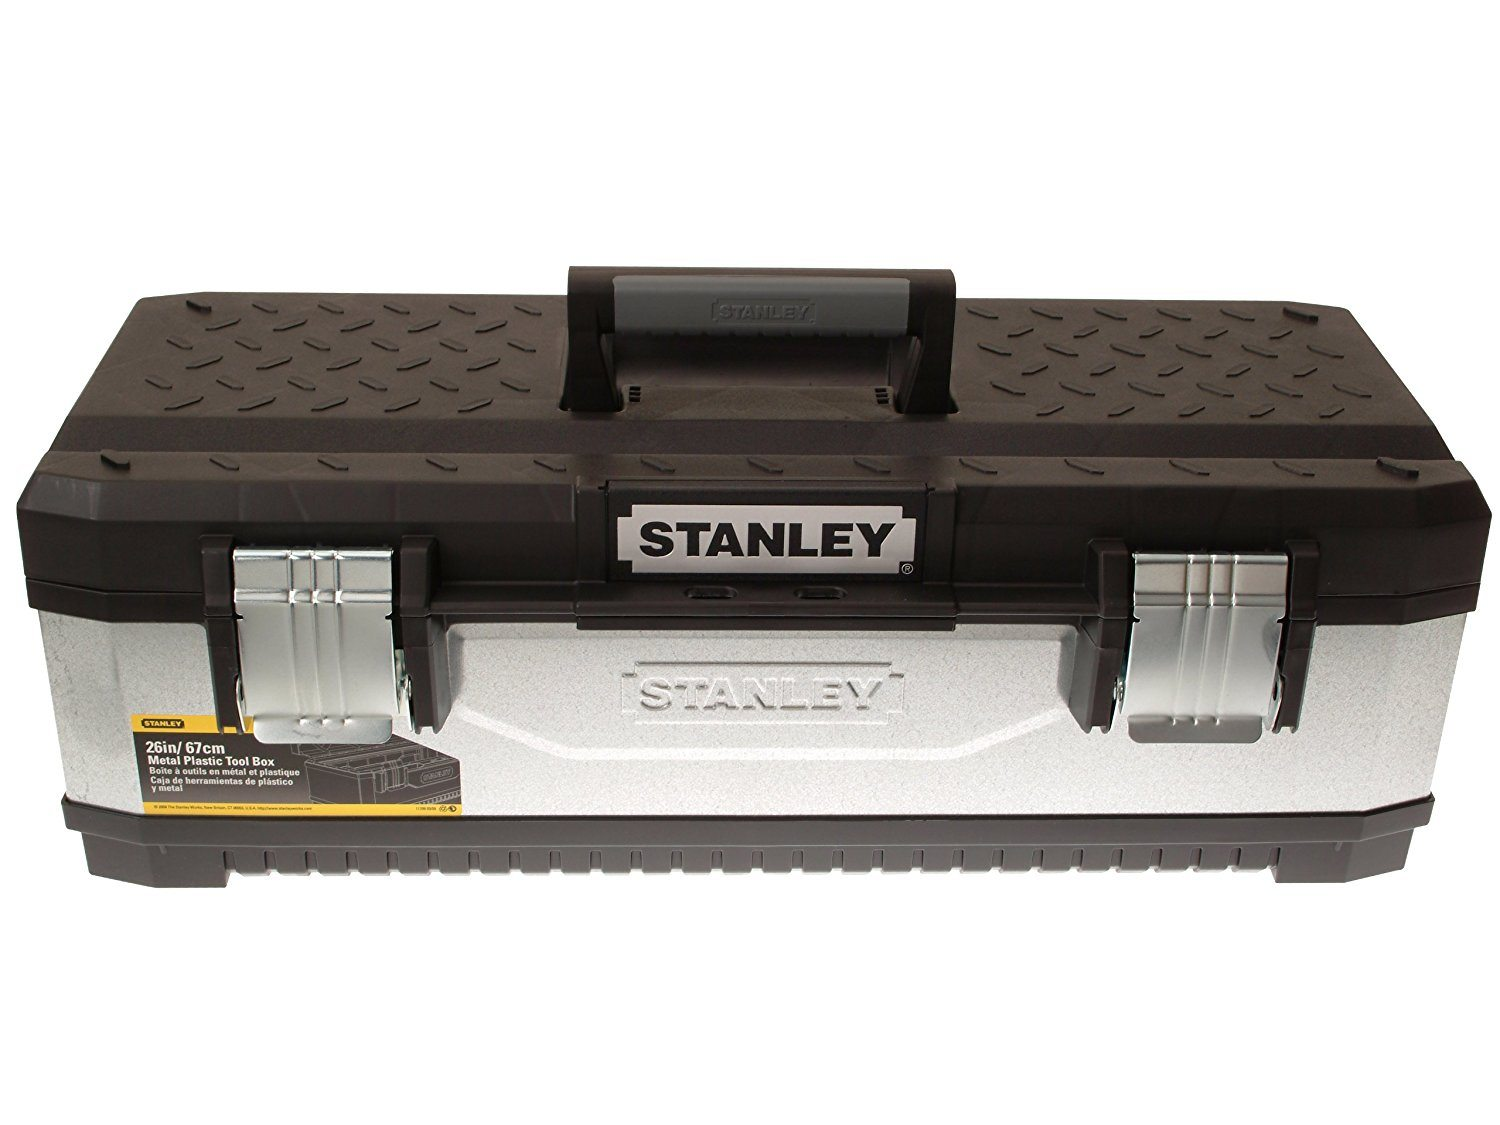 Stanley 195620 Galvanised Metal Toolbox 26-inch